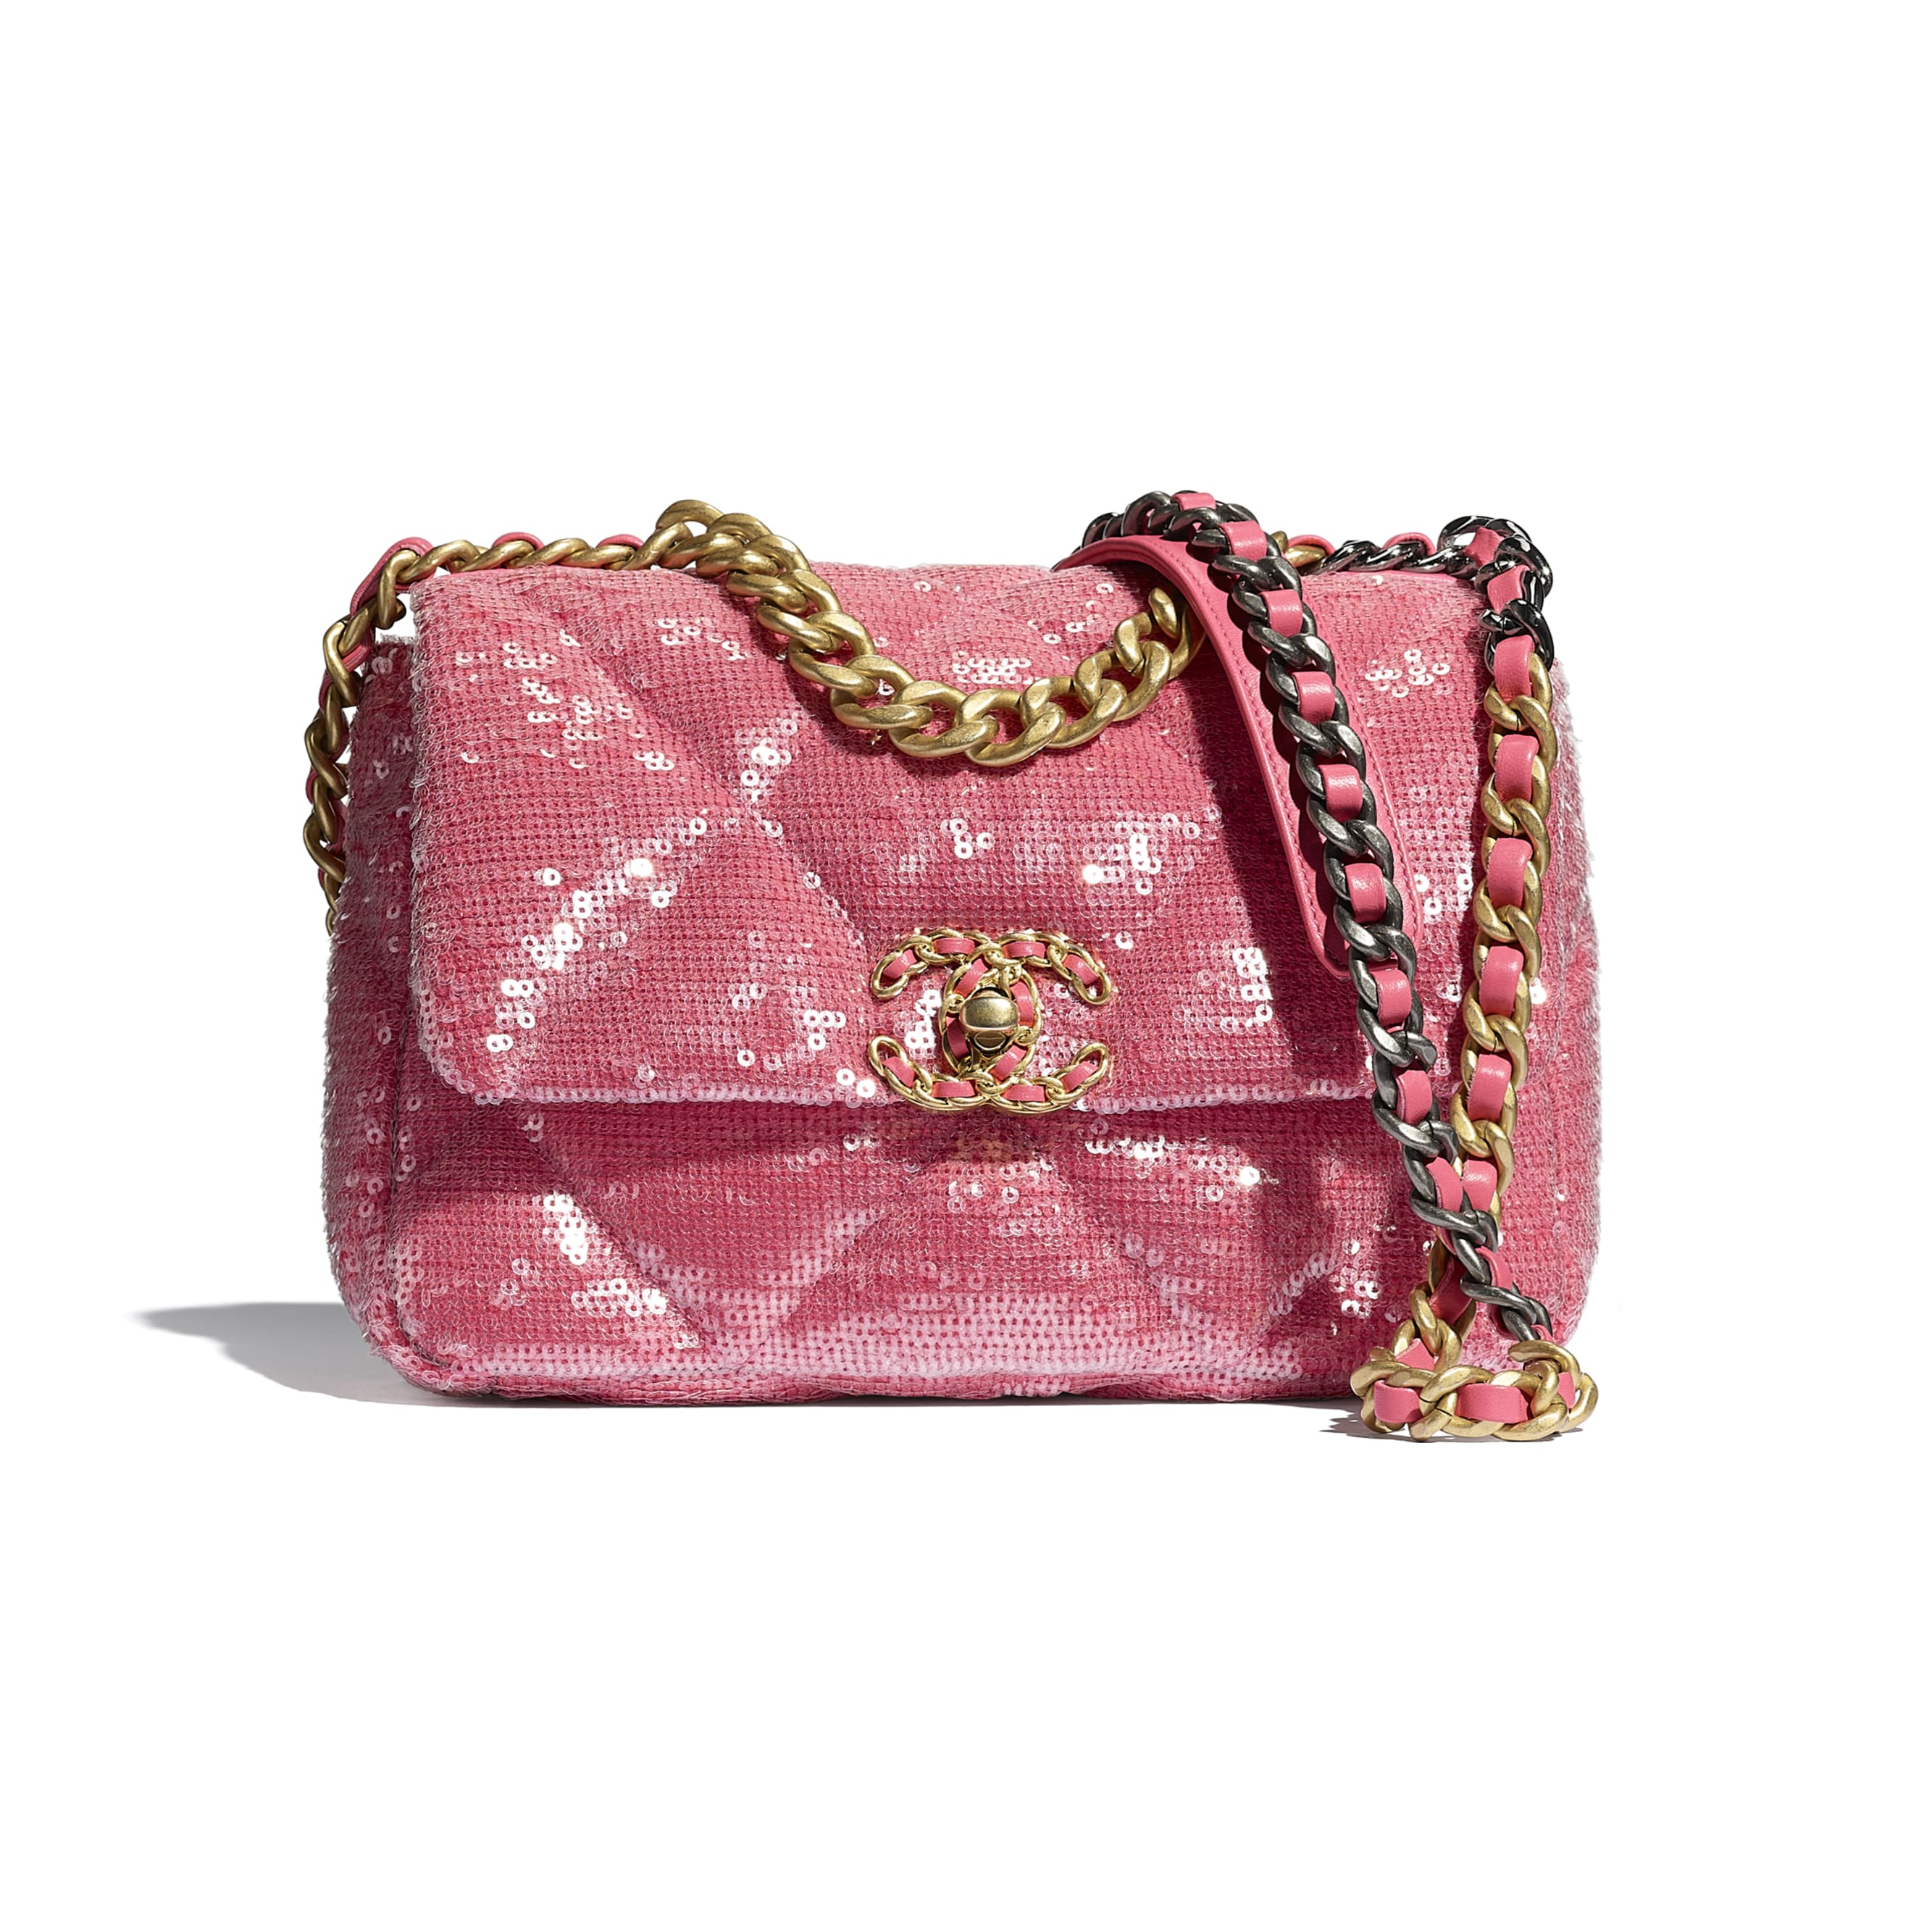 CHANEL 19 Flap Bag - Coral - Sequins, calfksin, silver-tone & gold-tone metal - CHANEL - Default view - see standard sized version